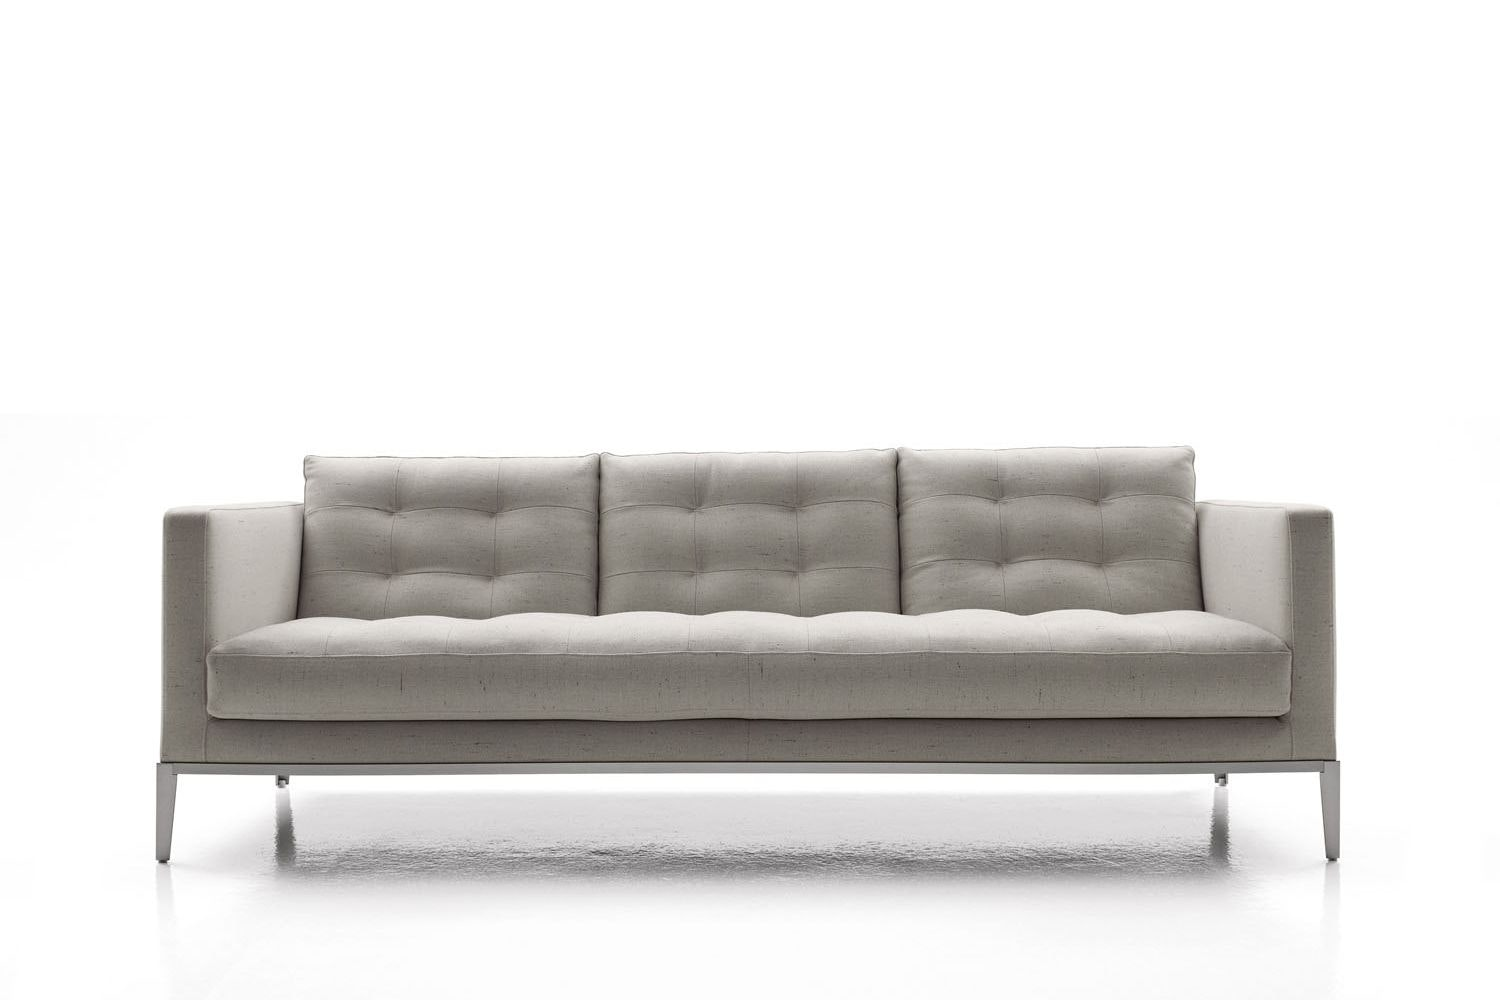 AC Lounge Sofa by Antonio Citterio for Maxalto